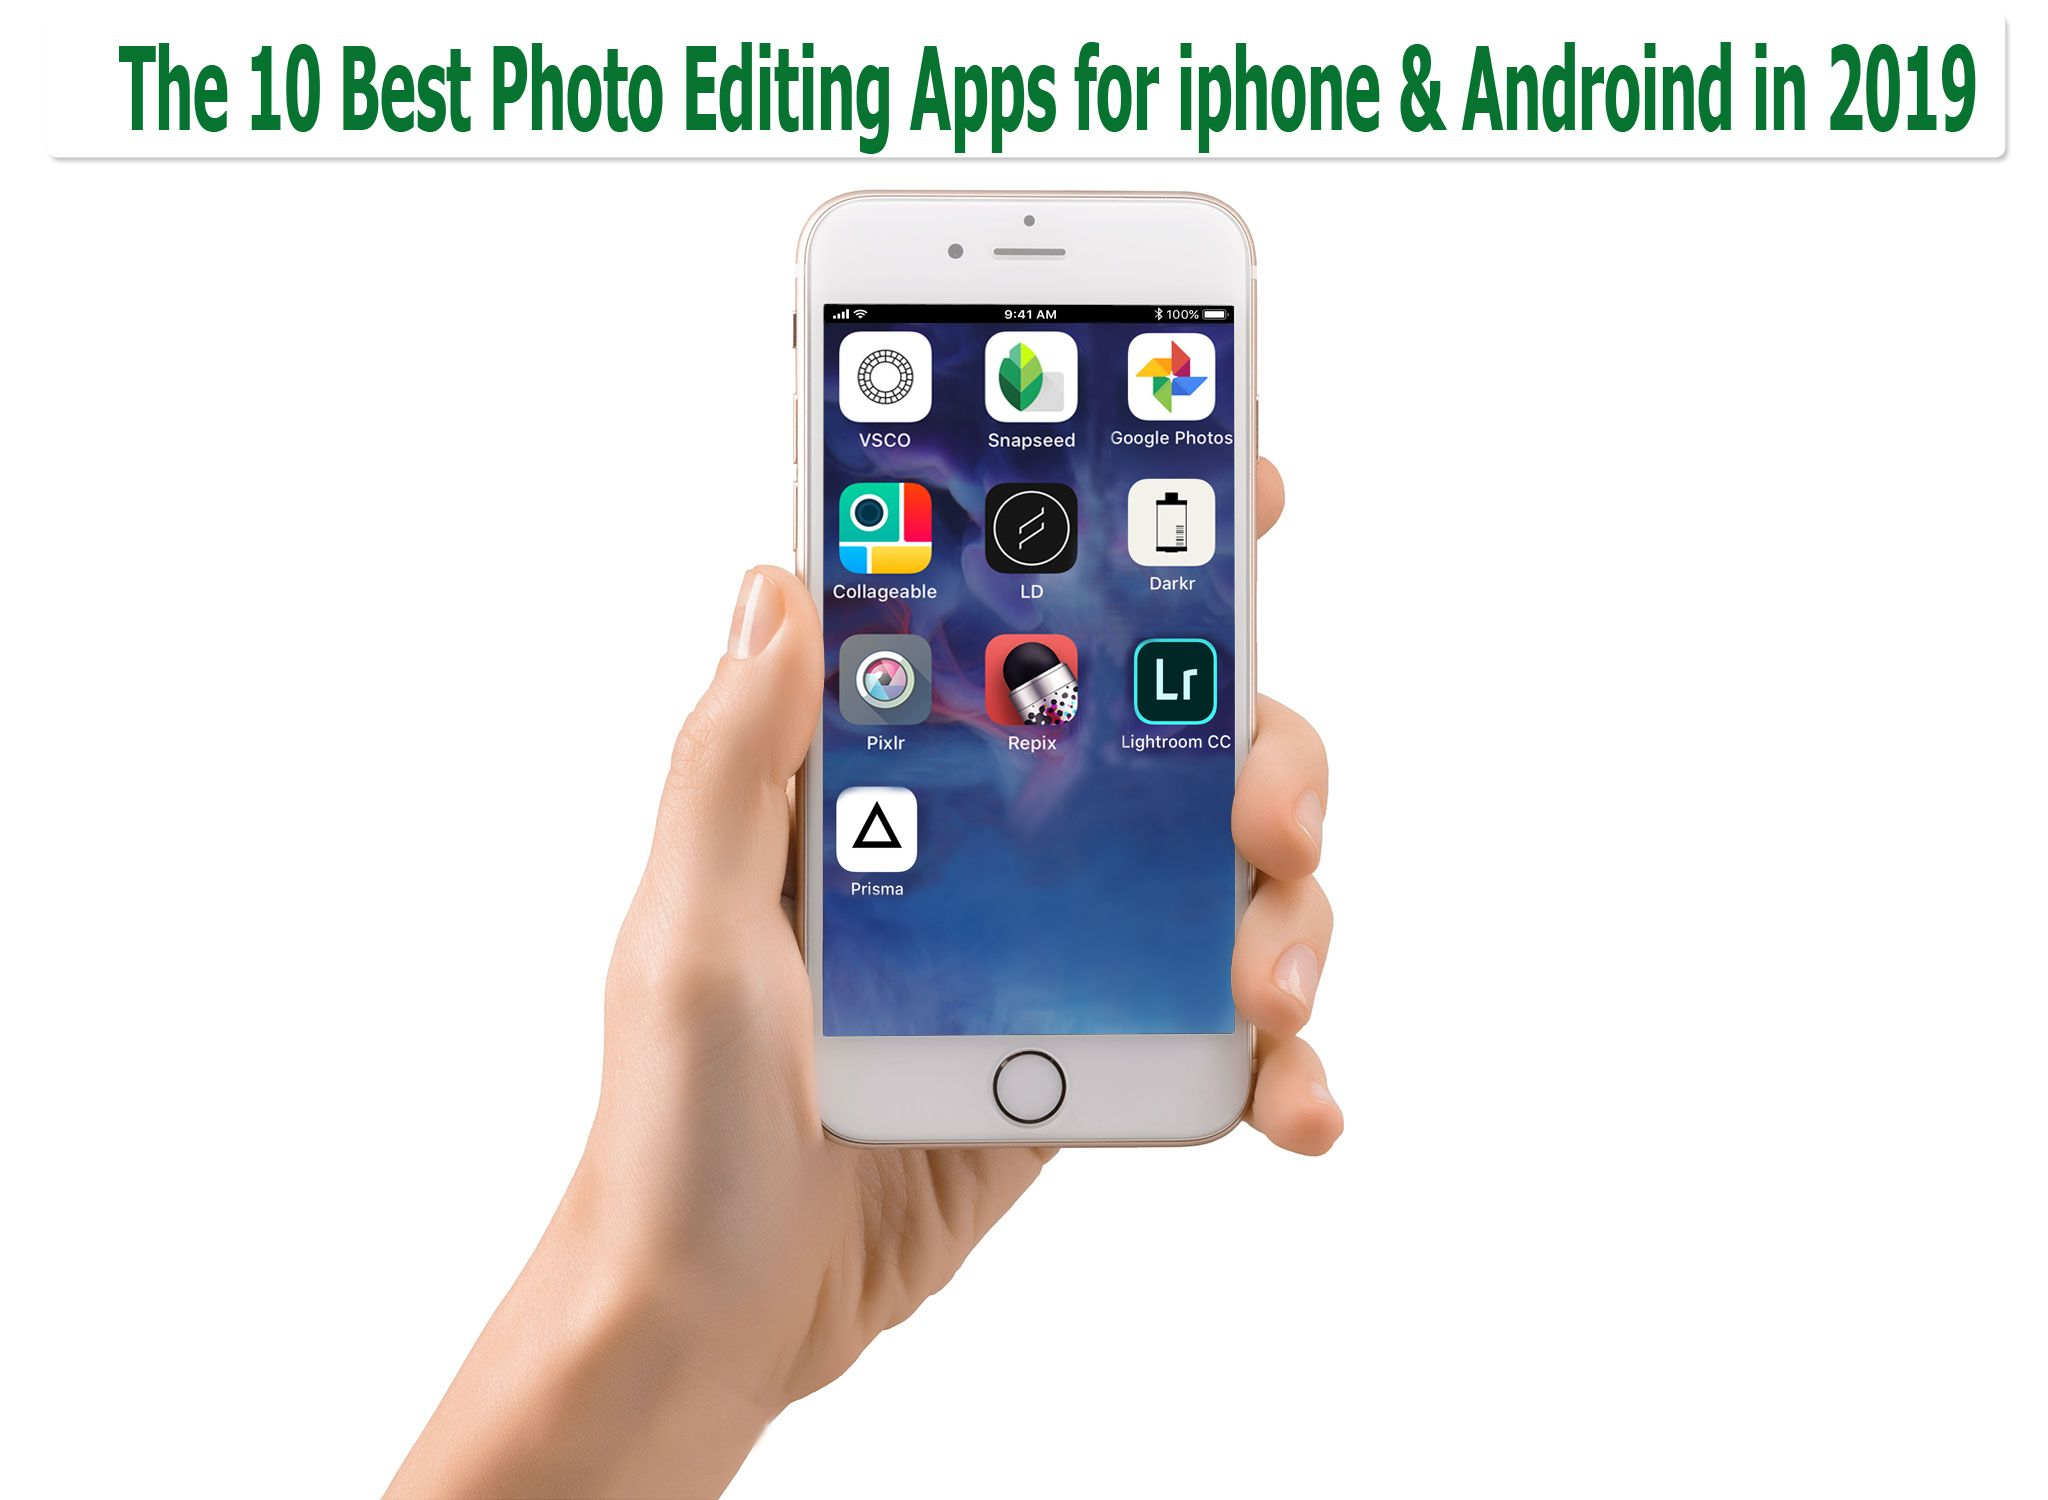 Pocket Spielbergs the 12 best video editing apps for mobile